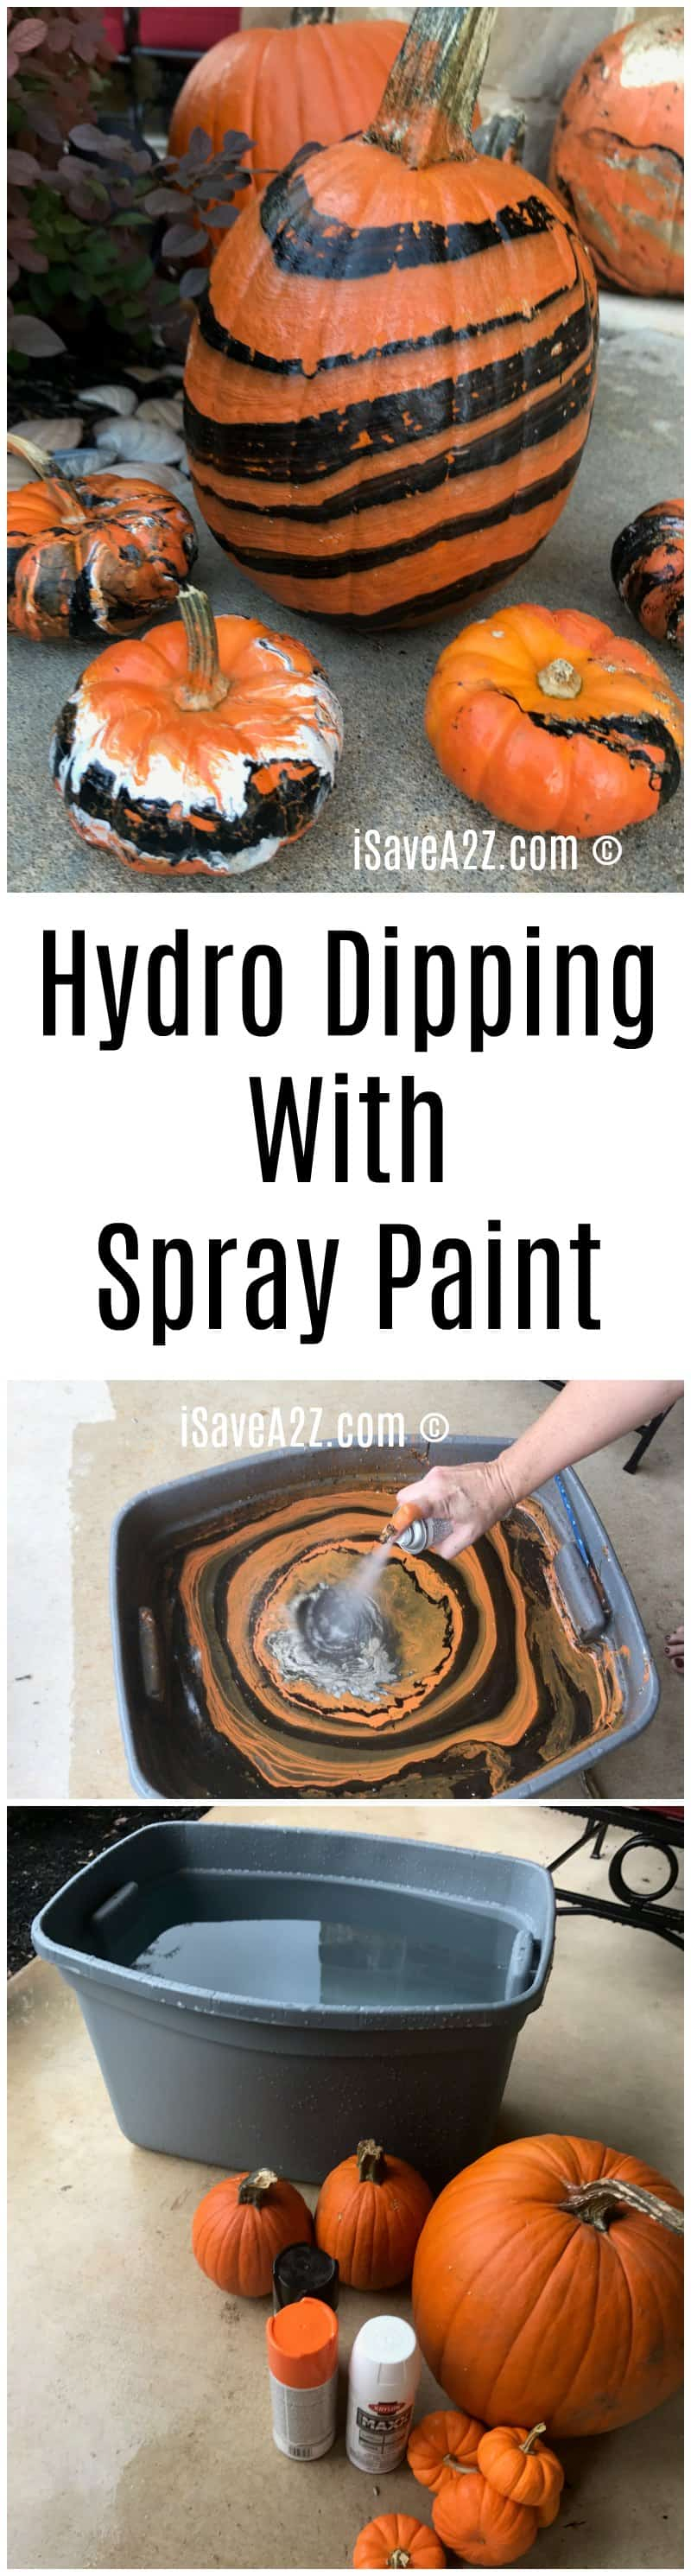 Hydro Dipping With Spray Paint